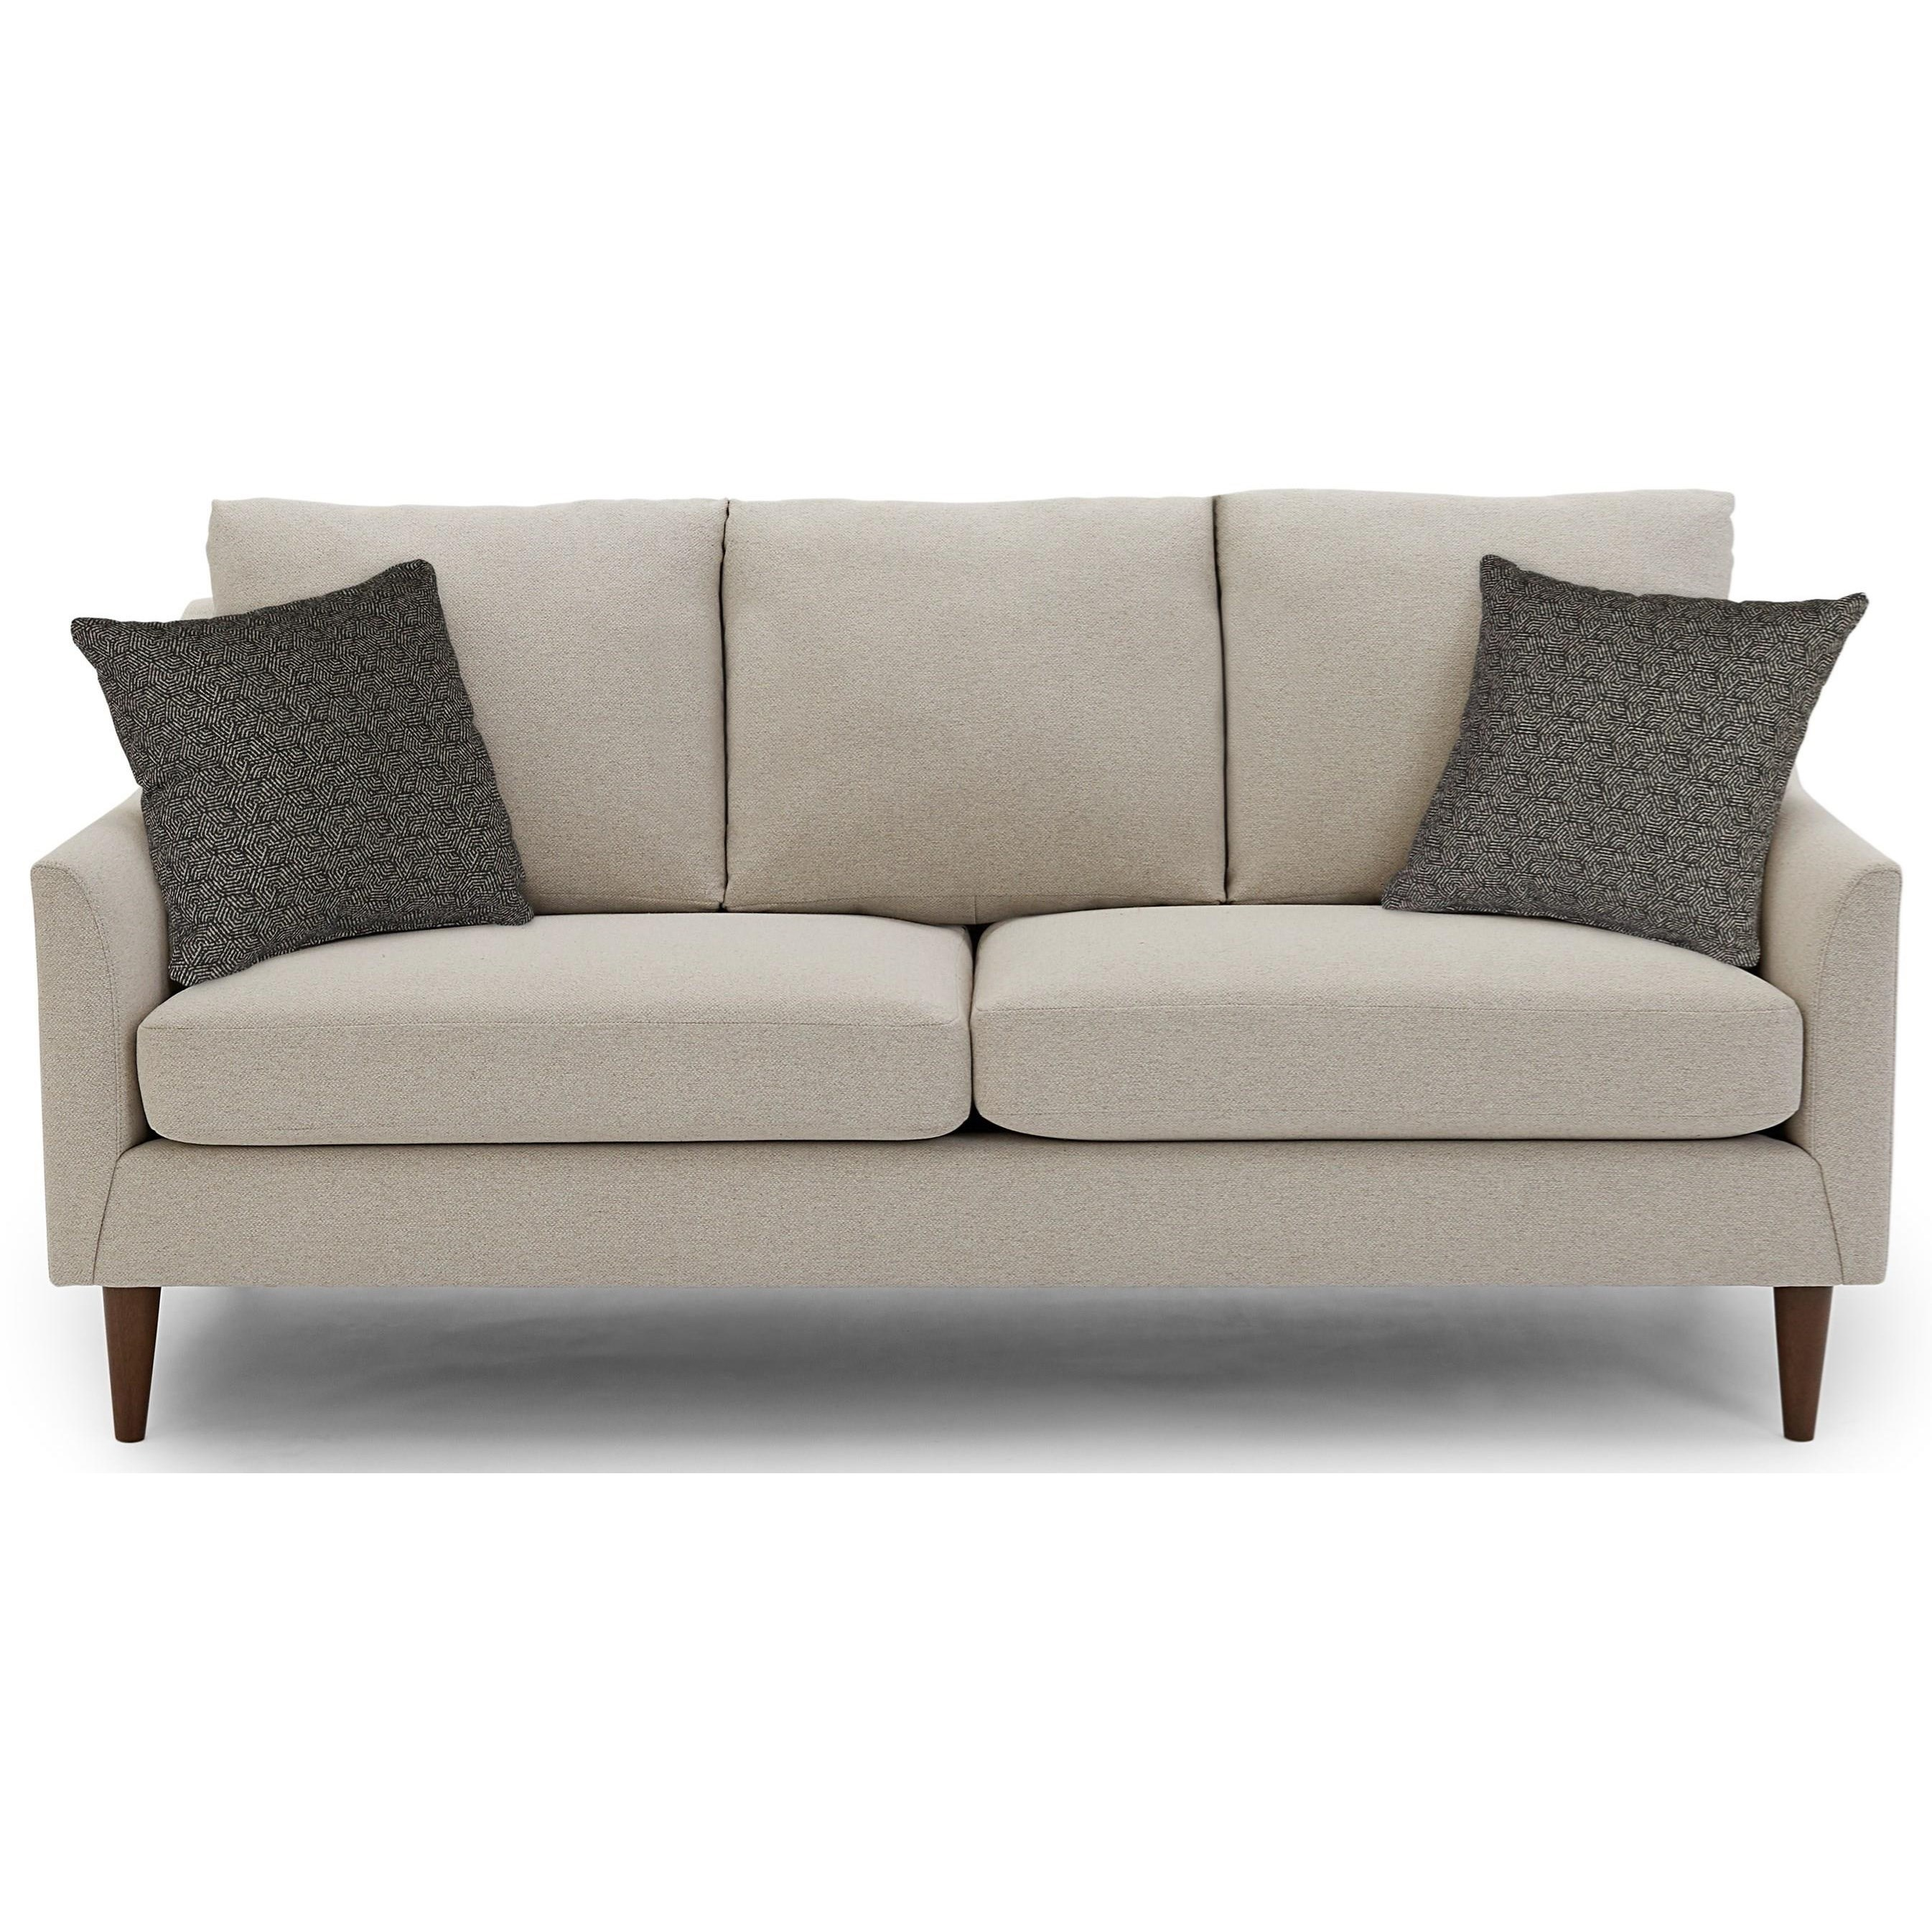 Smitten Stationary Sofa by Best Home Furnishings at Baer's Furniture